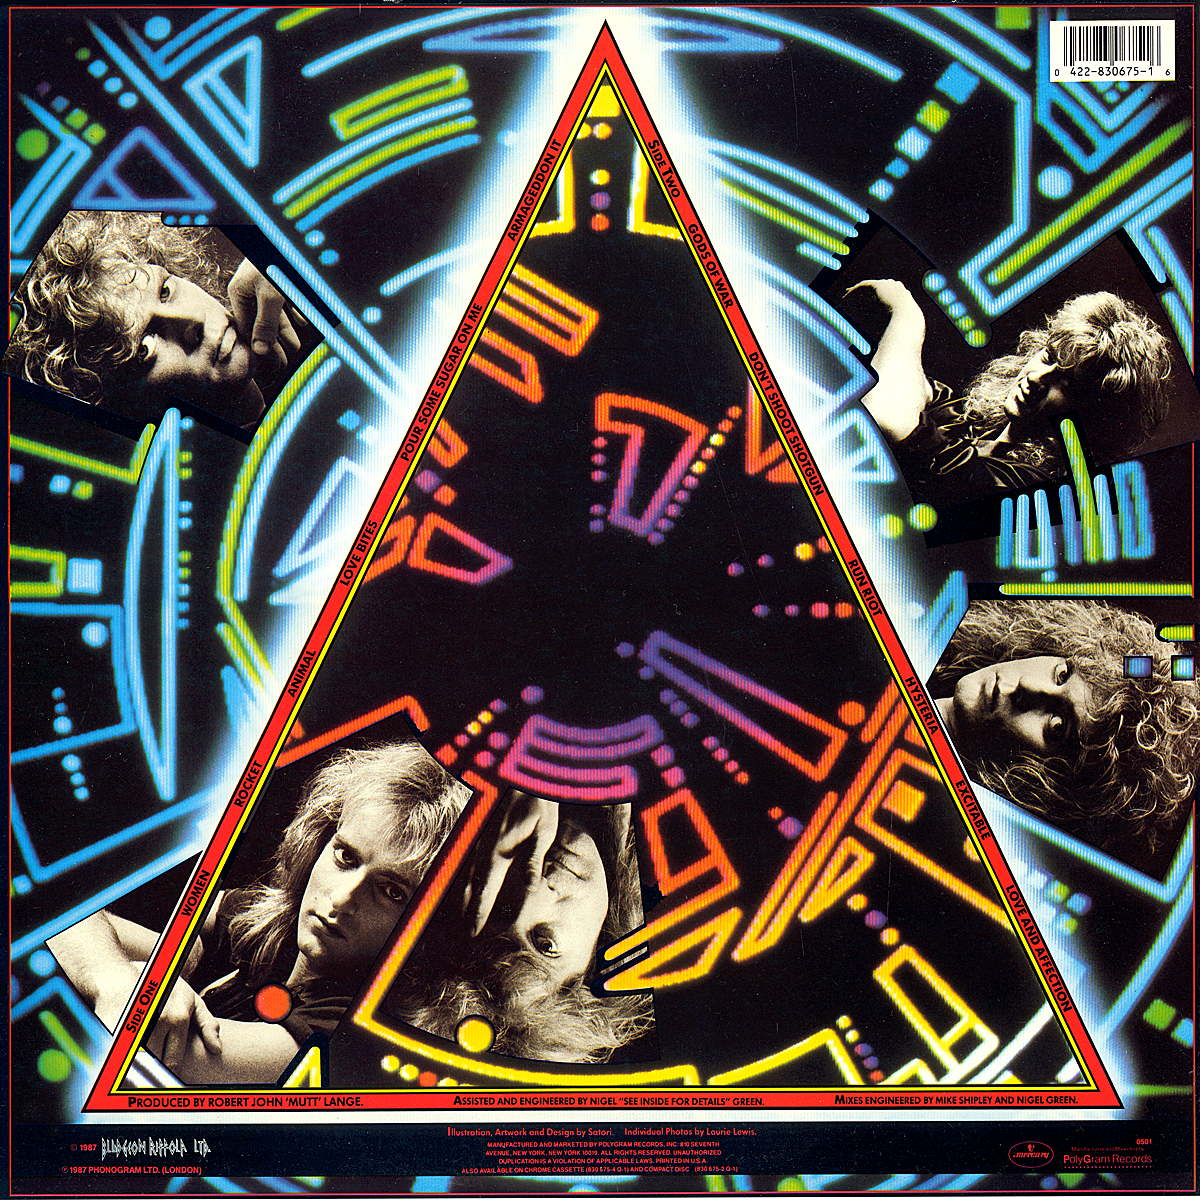 a review of def leppards album hysteria Hysteria (def leppard album)'s wiki: hysteria is the fourth studio album by english hard rock band def leppard, released on 3 august 1987 through mercury records and reissued on 1 january 2000.